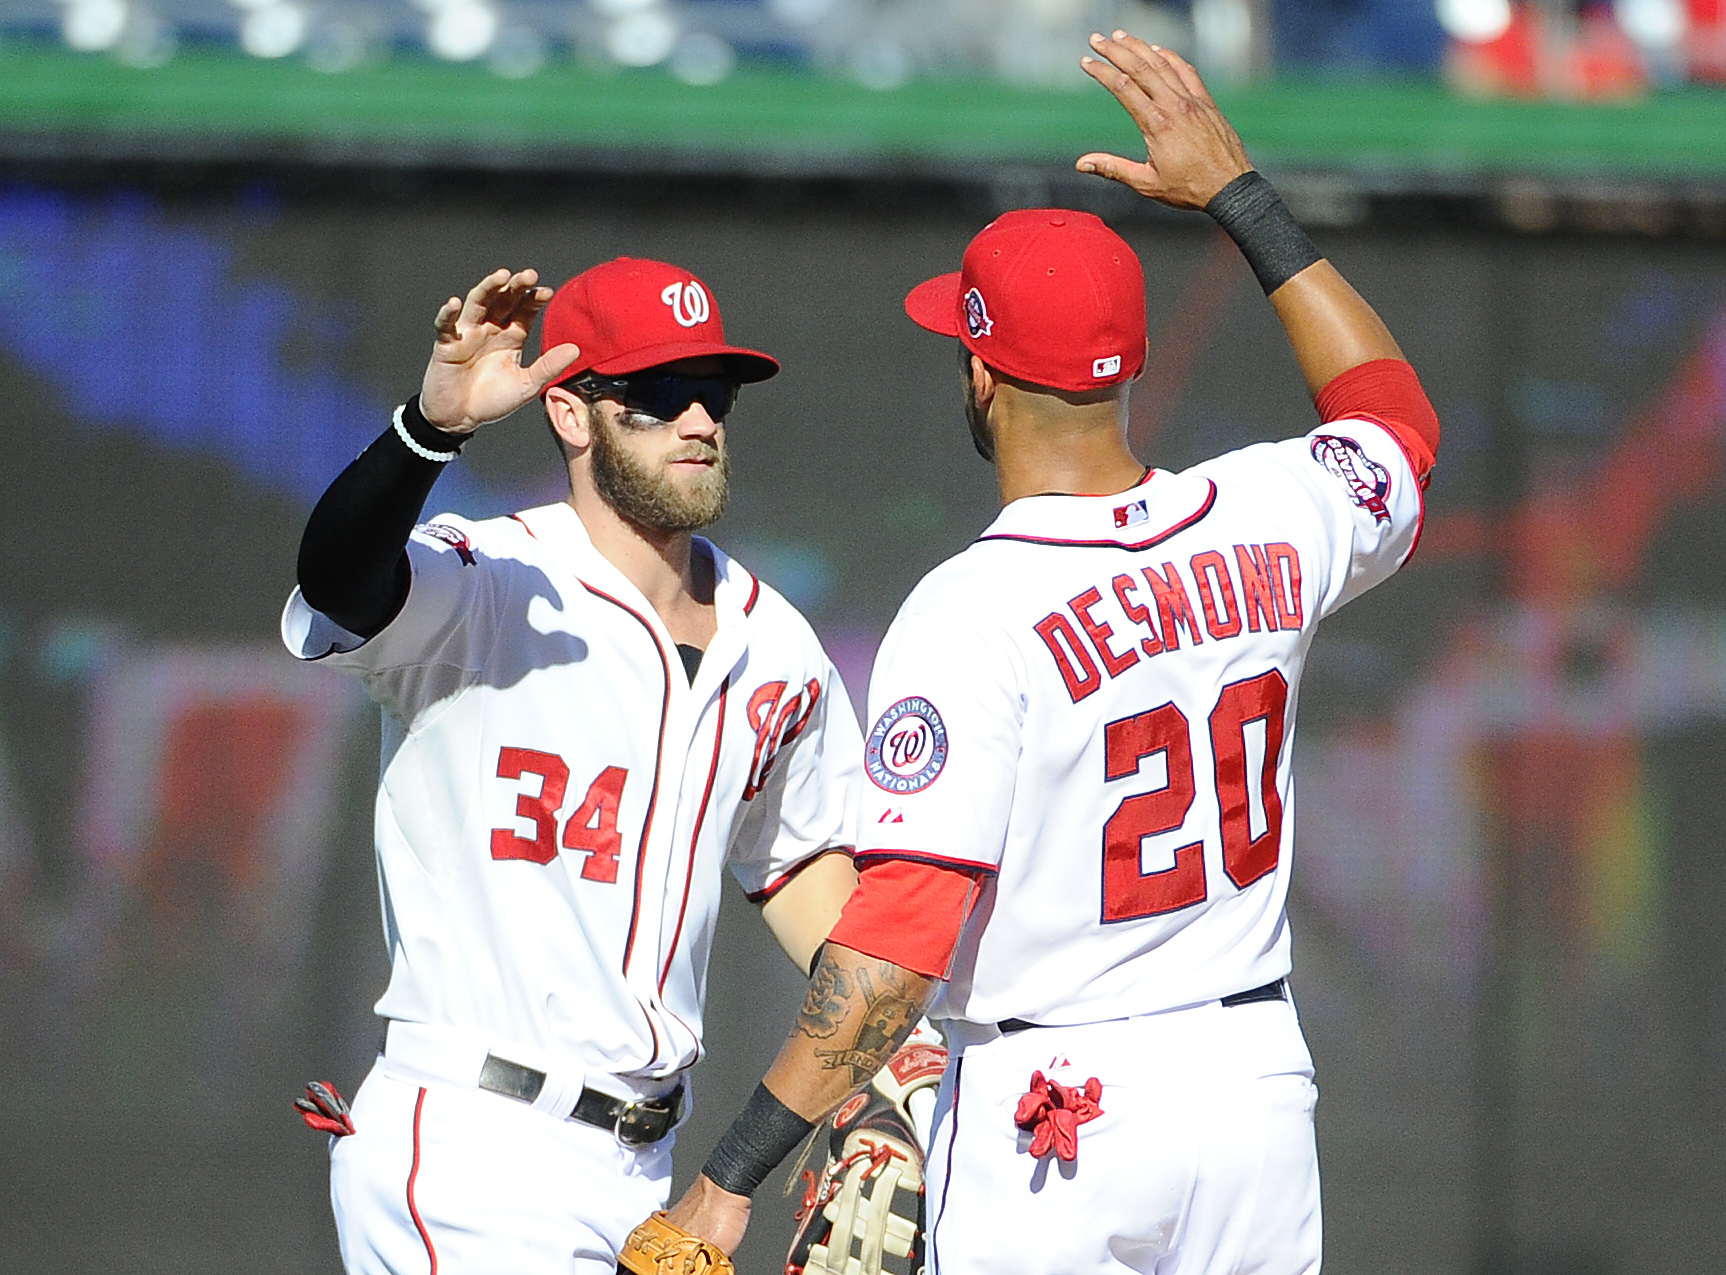 The Nats have clawed their way back to within four games with their recent winning streak. With the Mets weak remaining schedule, let's hope the Nats streak carries over to their head to head matchup with New York.